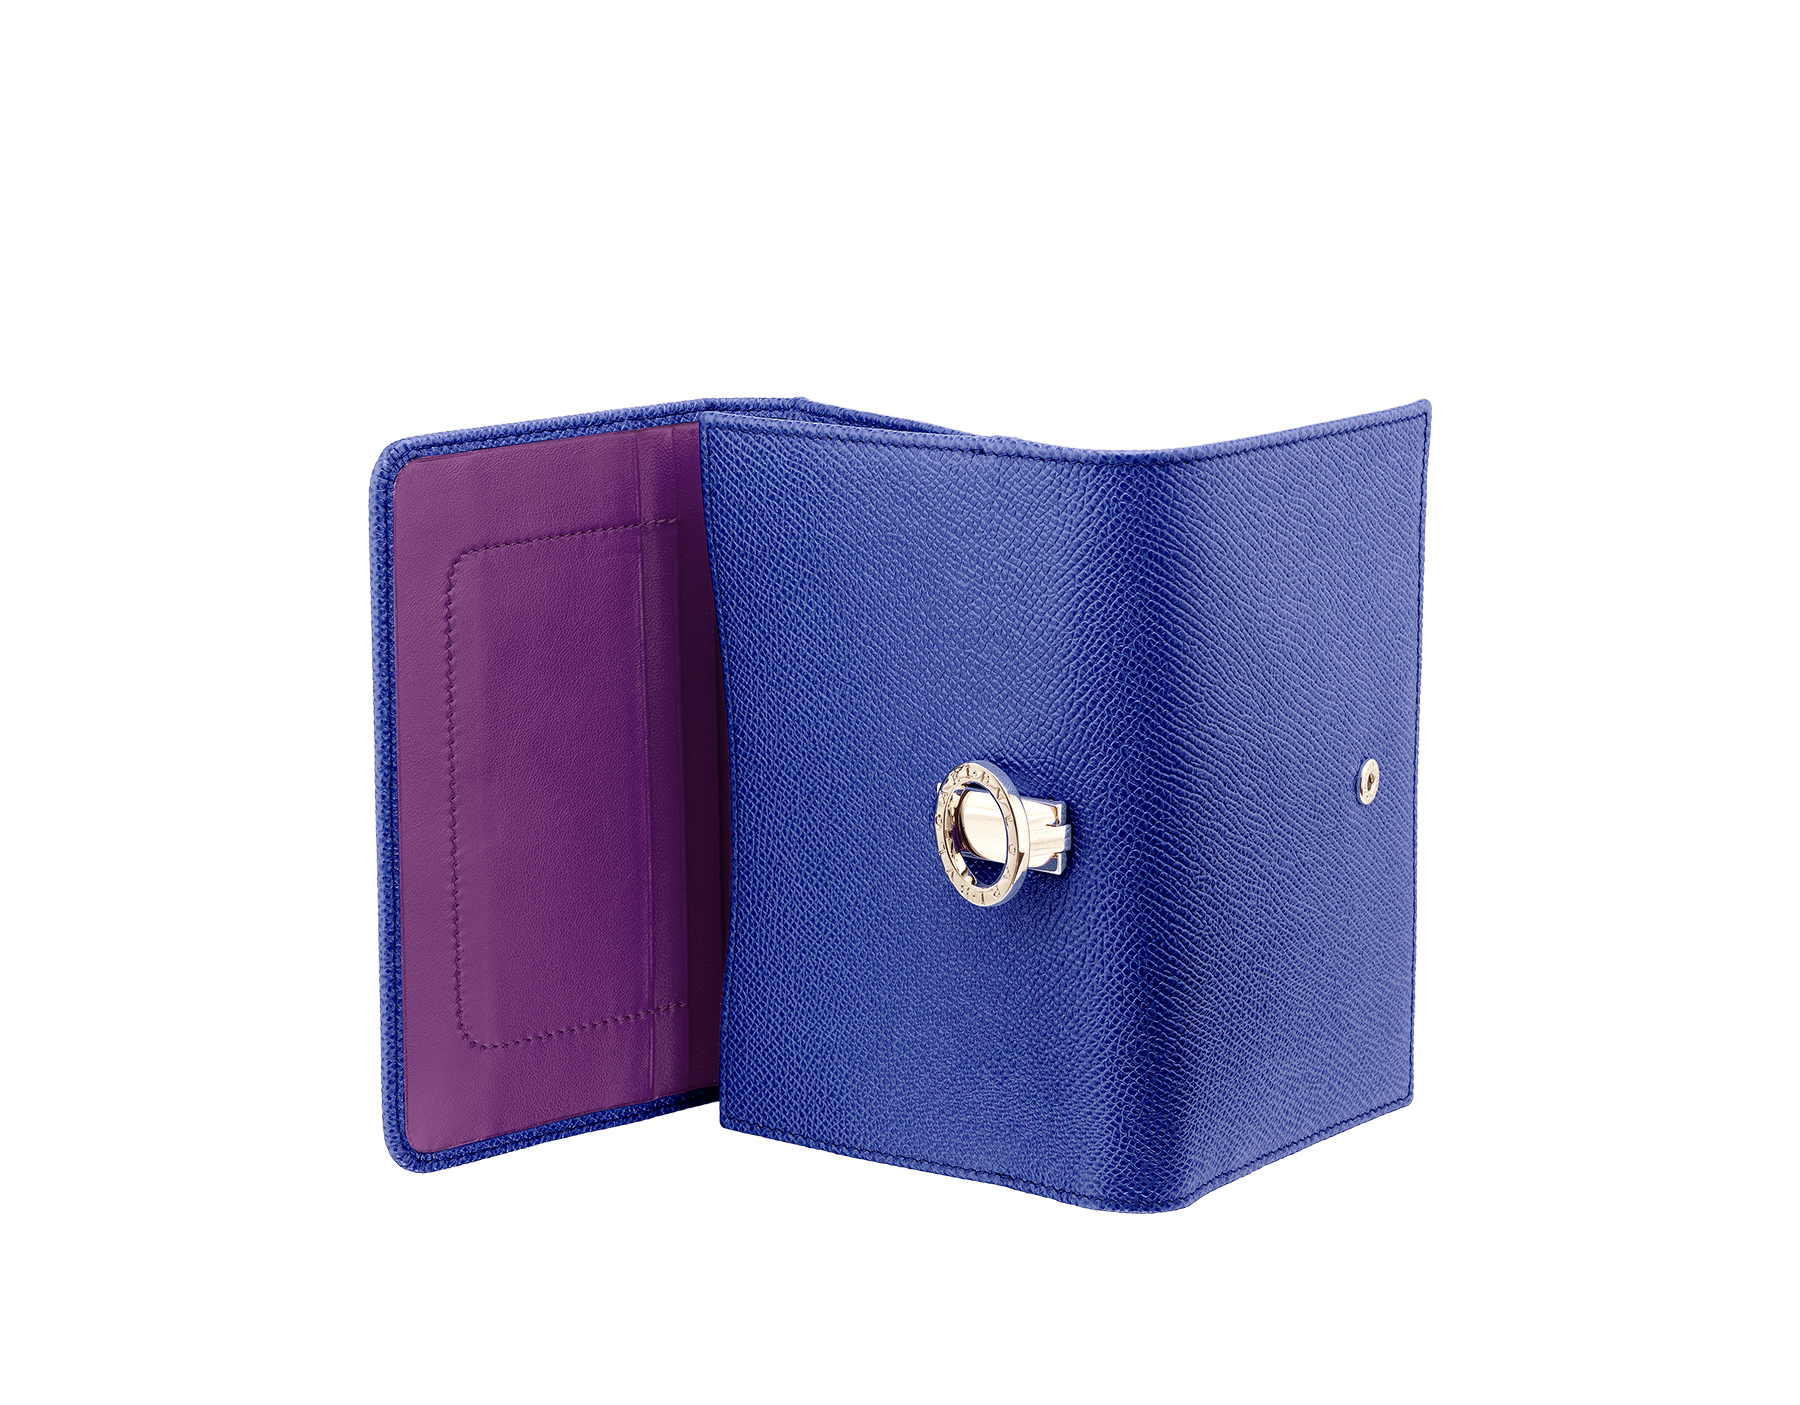 BVLGARI BVLGARI compact pochette in cobalt tourmaline grain calf leather and aster amethyst nappa leather. Iconic logo closure clip in light gold plated brass 287604 image 3